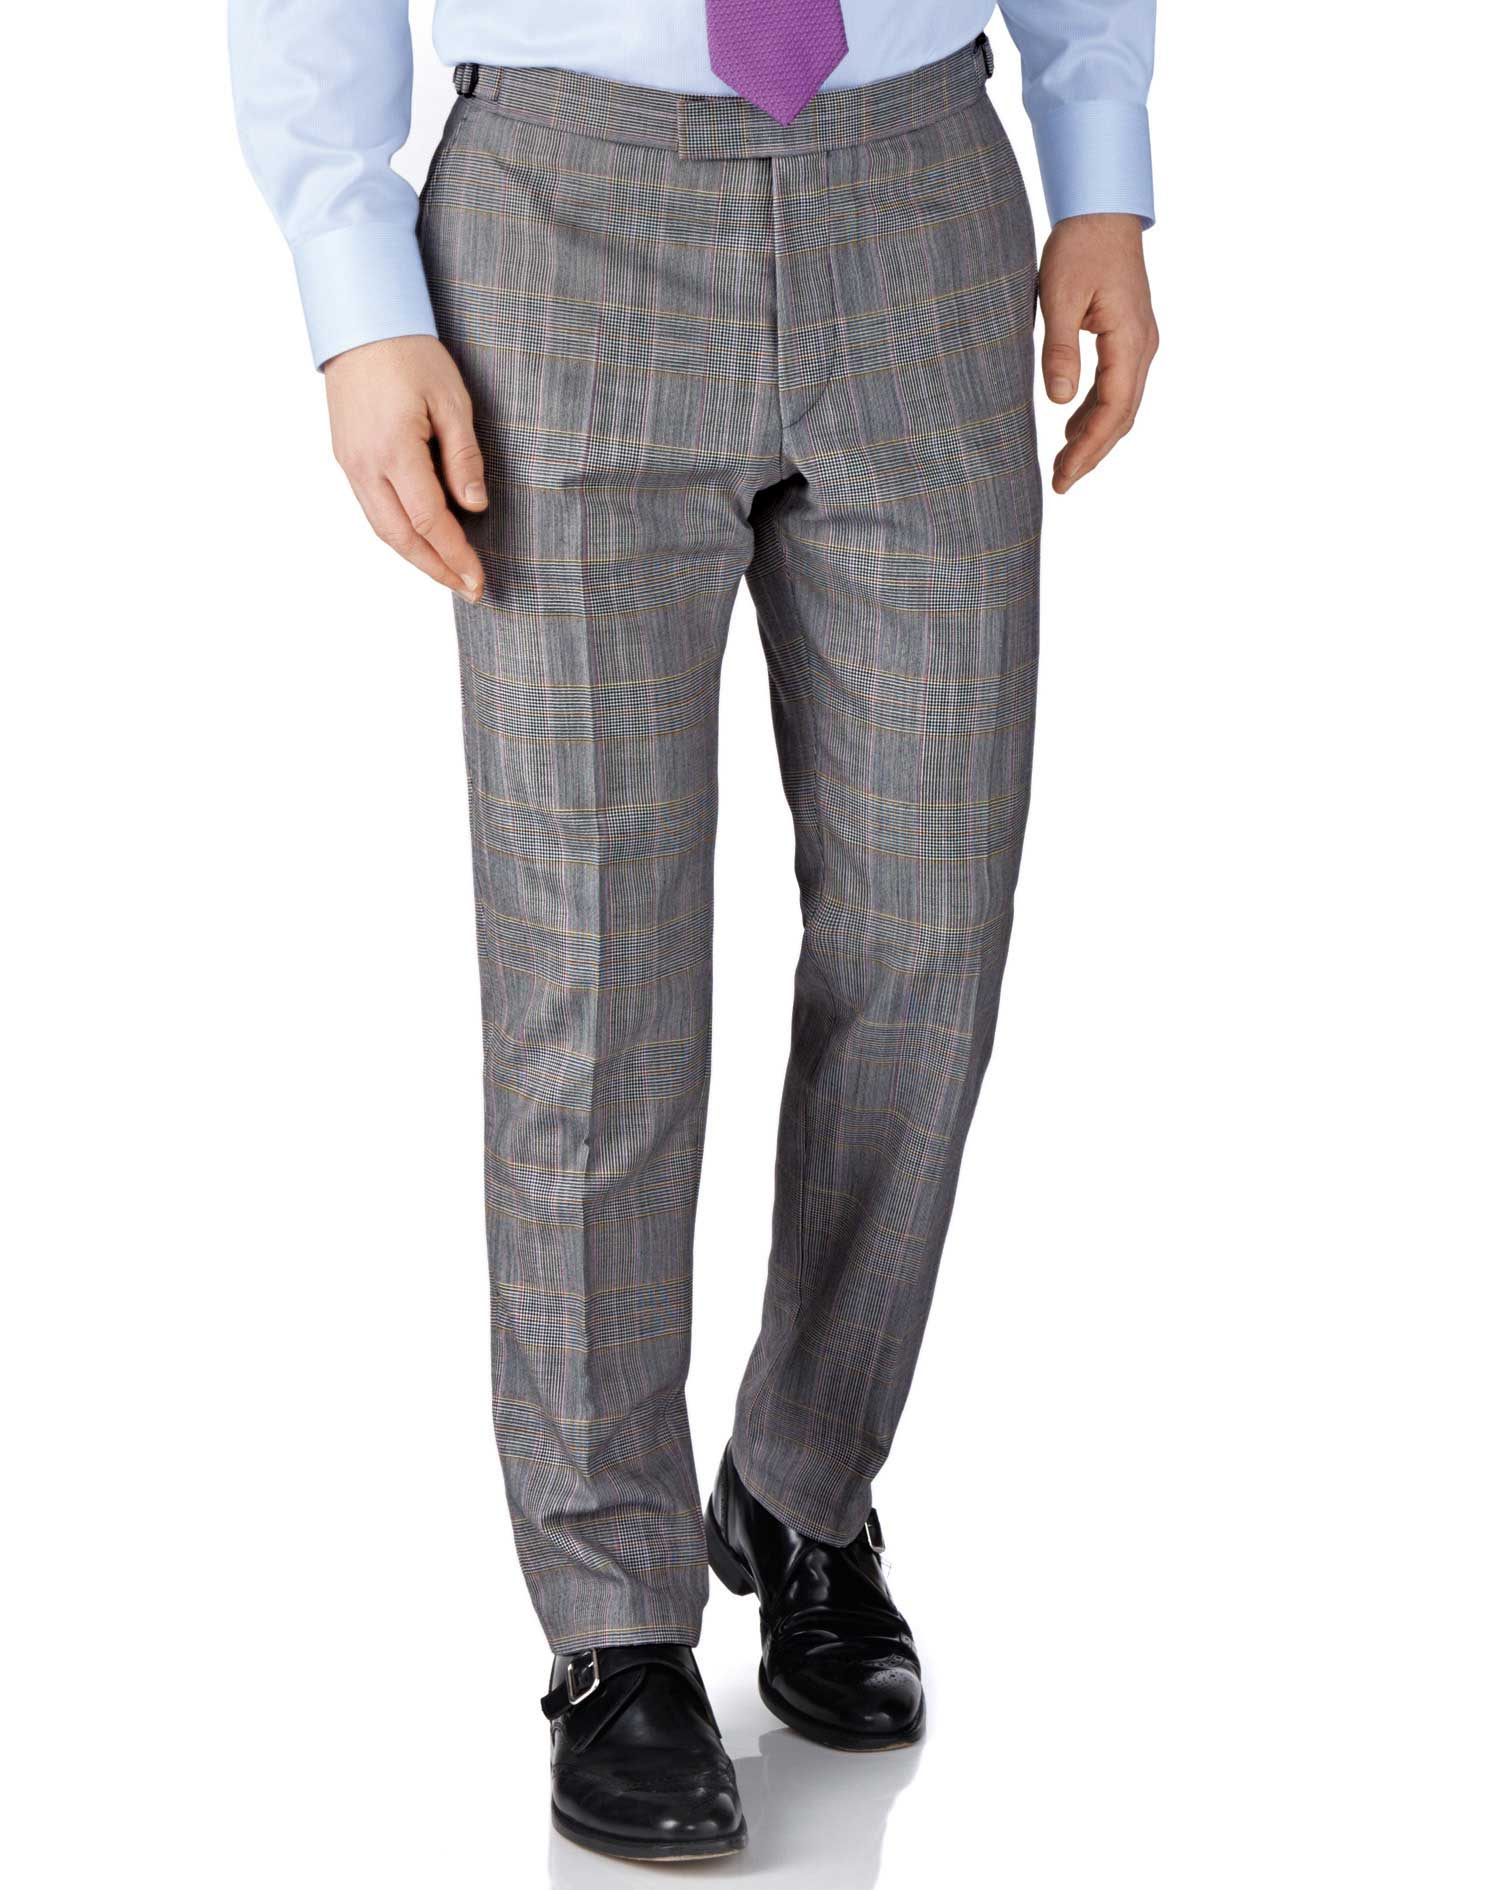 Grey Check Slim Fit British Panama Luxury Suit Trousers Size W34 L38 by Charles Tyrwhitt